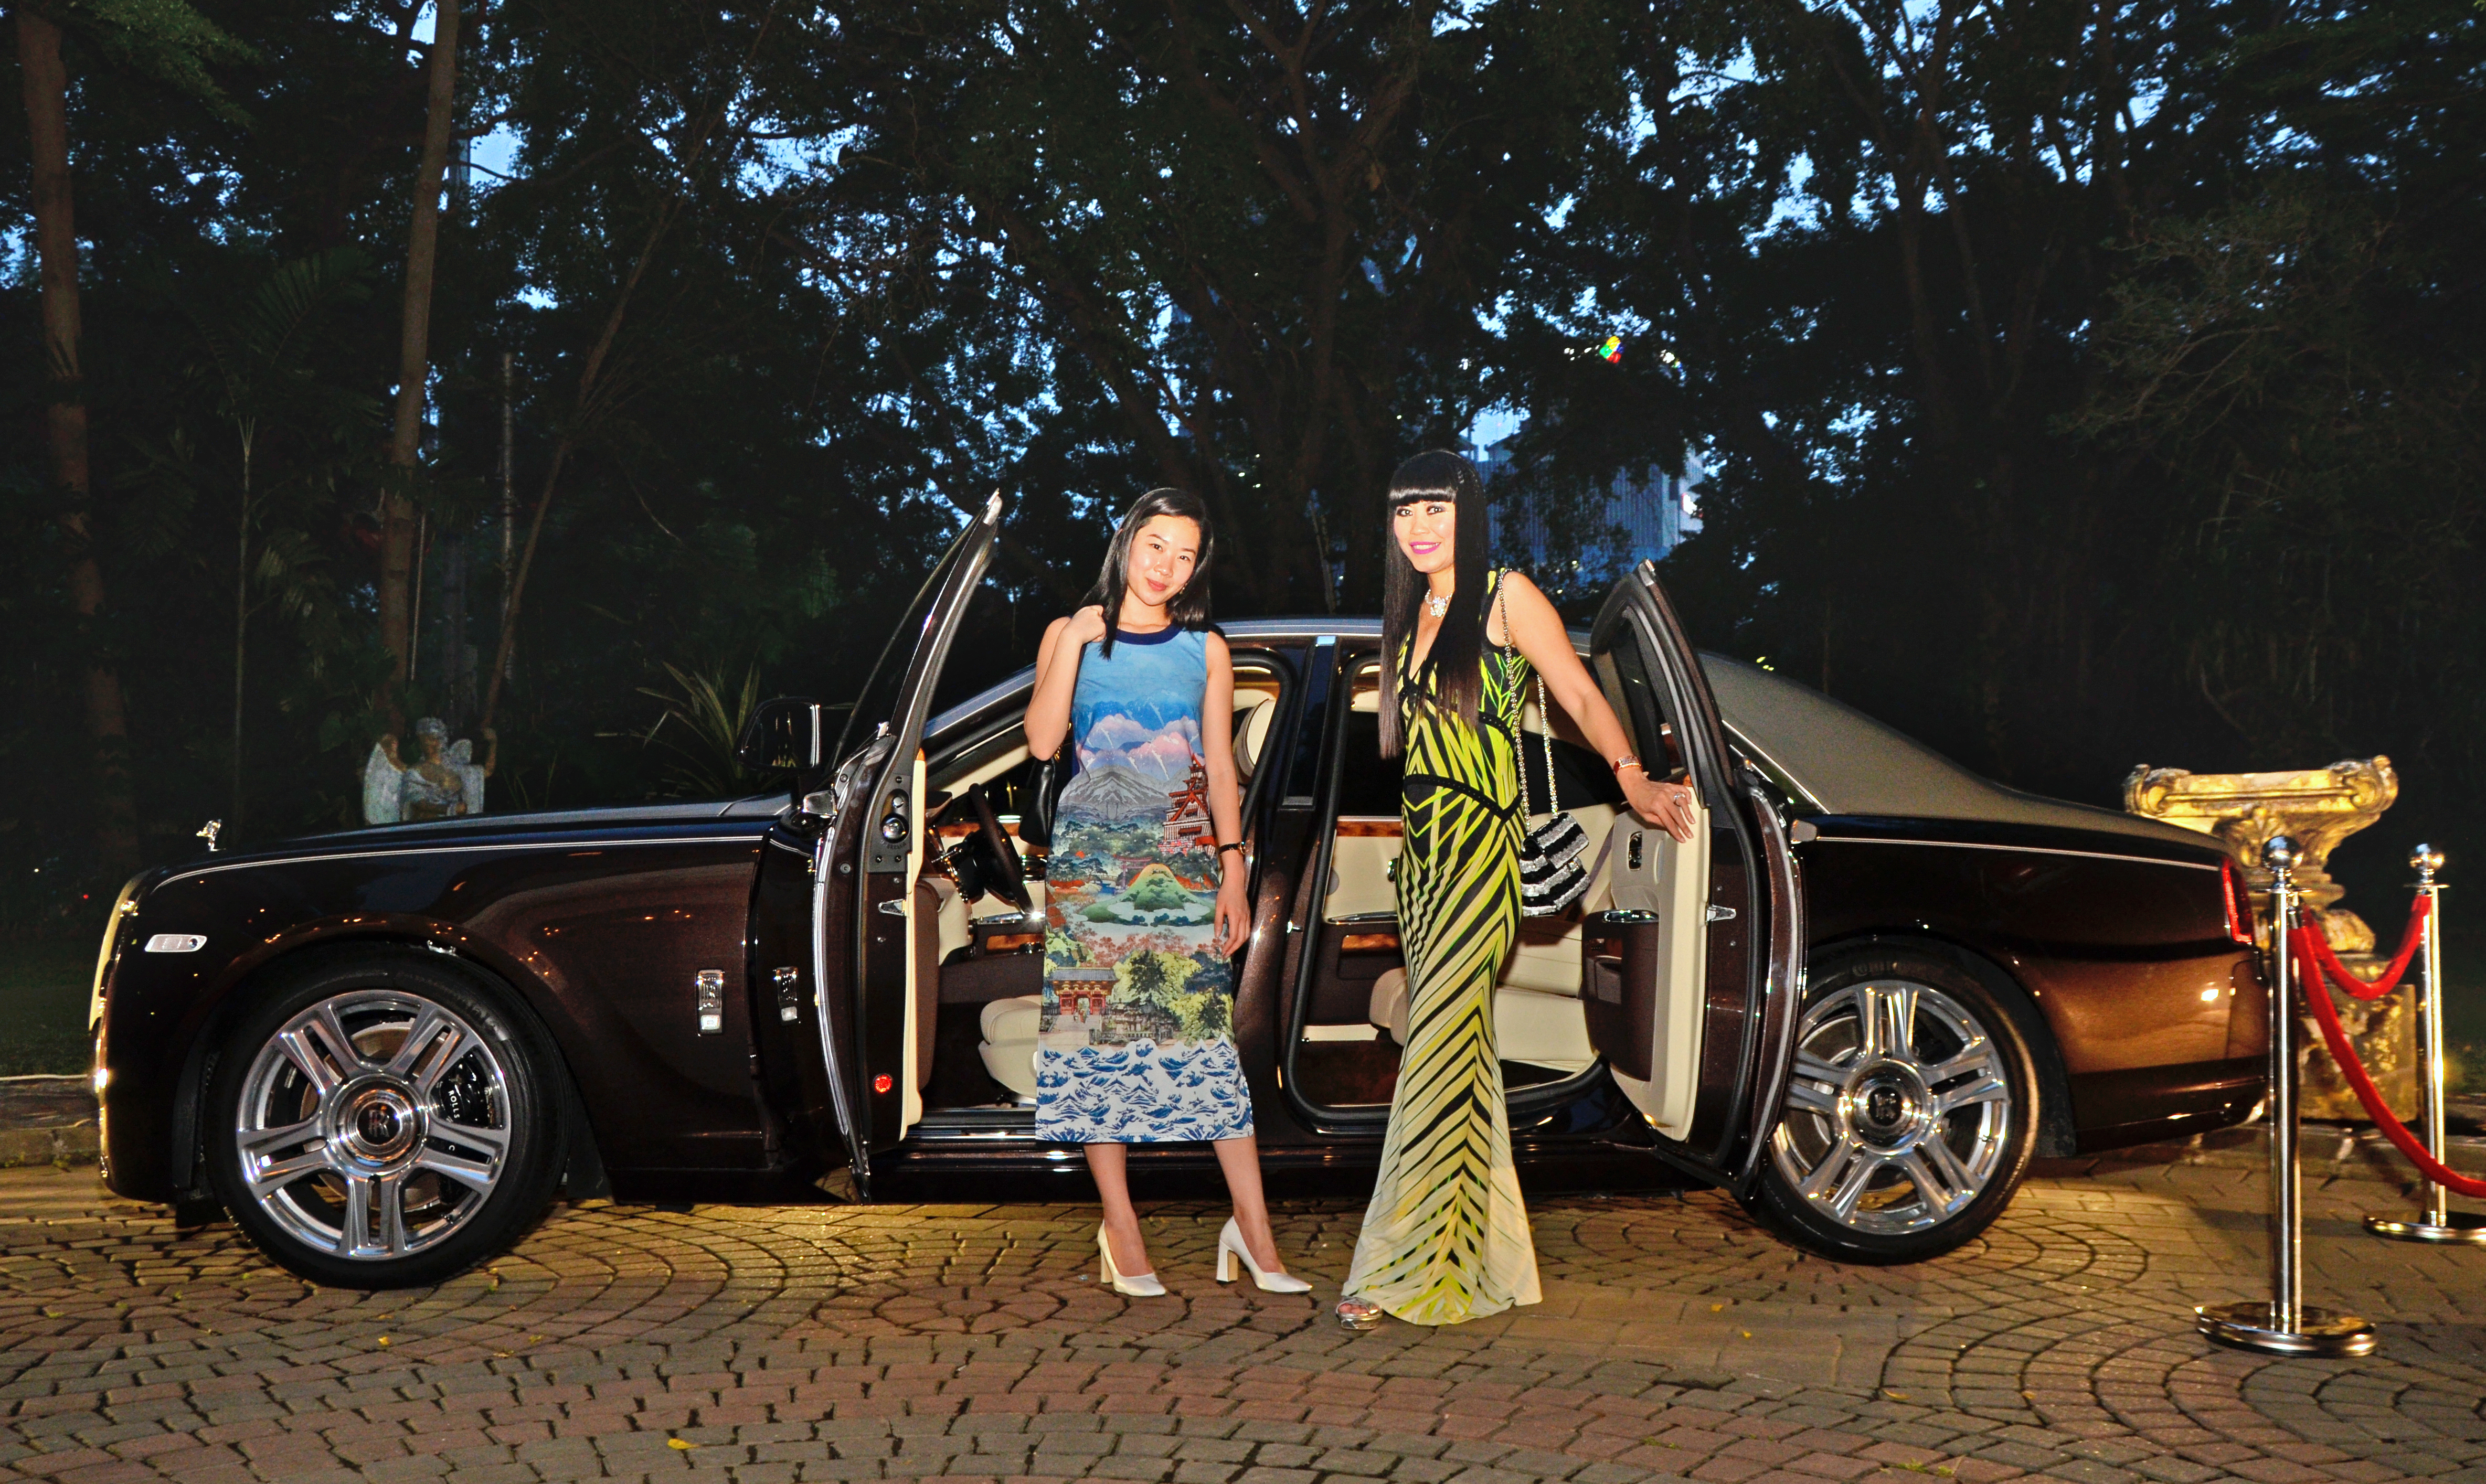 Ms Yvette Yeo, Rolls-Royce Dealer Marketing Specialist (left) and Ms Lenny Marlina Tanu, founder and owner of Exquisite Media Group